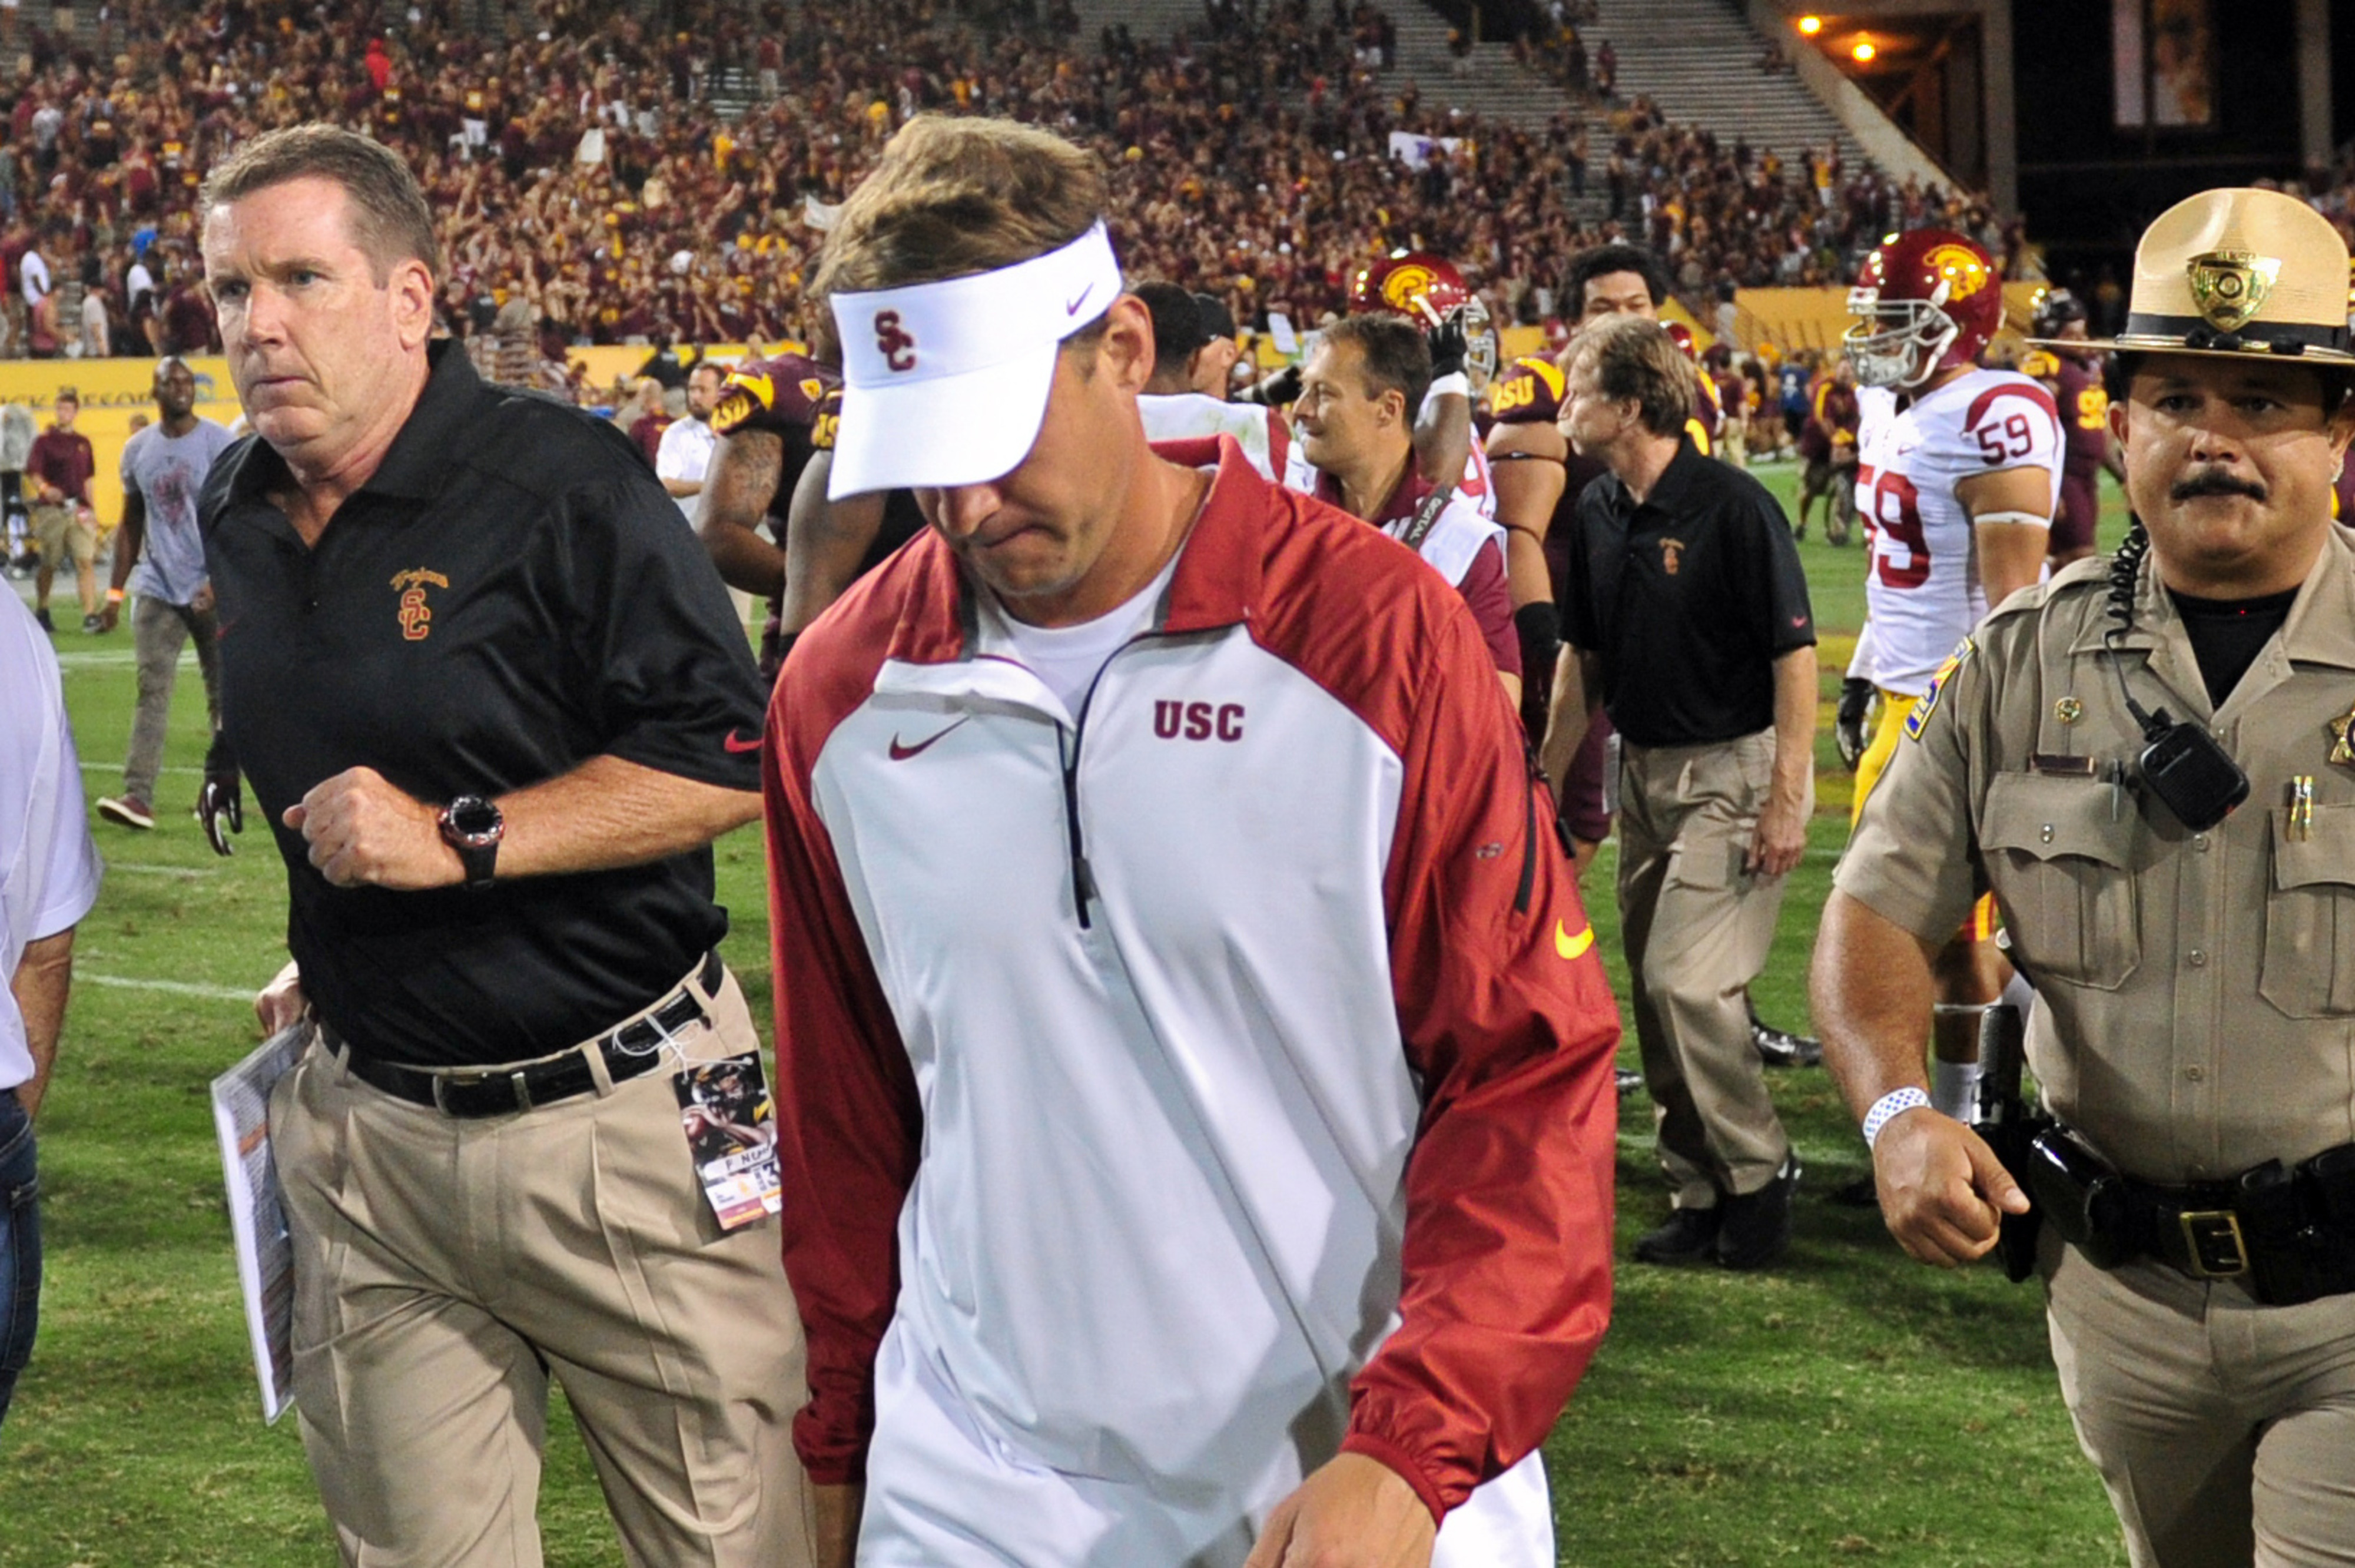 This is the last time we'll see Lane Kiffin in his trademark USC visor.